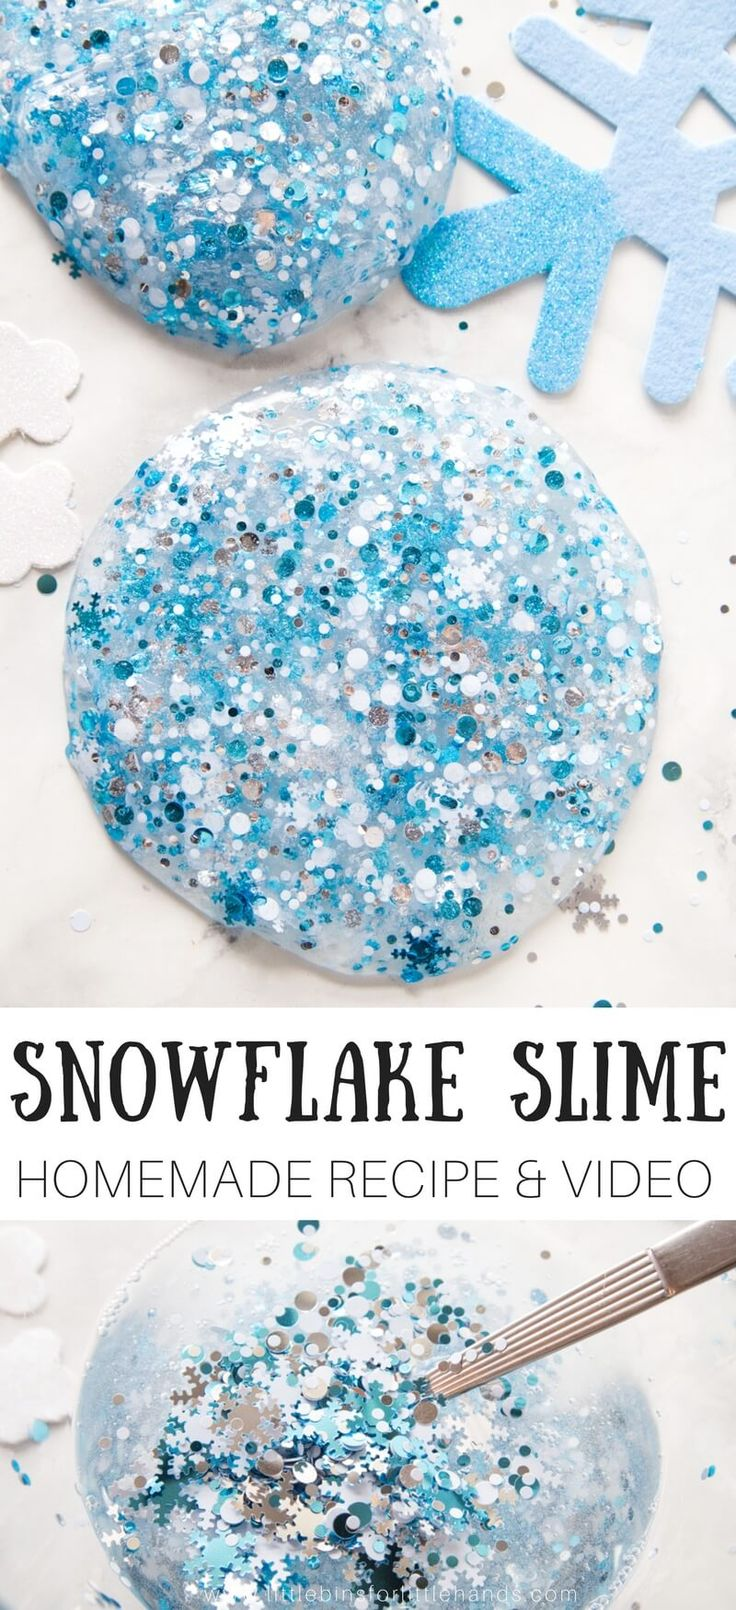 Whether you love or hate snow or live somewhere where there will never be snow, you can still learn how to make homemade snowflake slime recipe with the kids! Making slime is an awesome winter indoor activity.